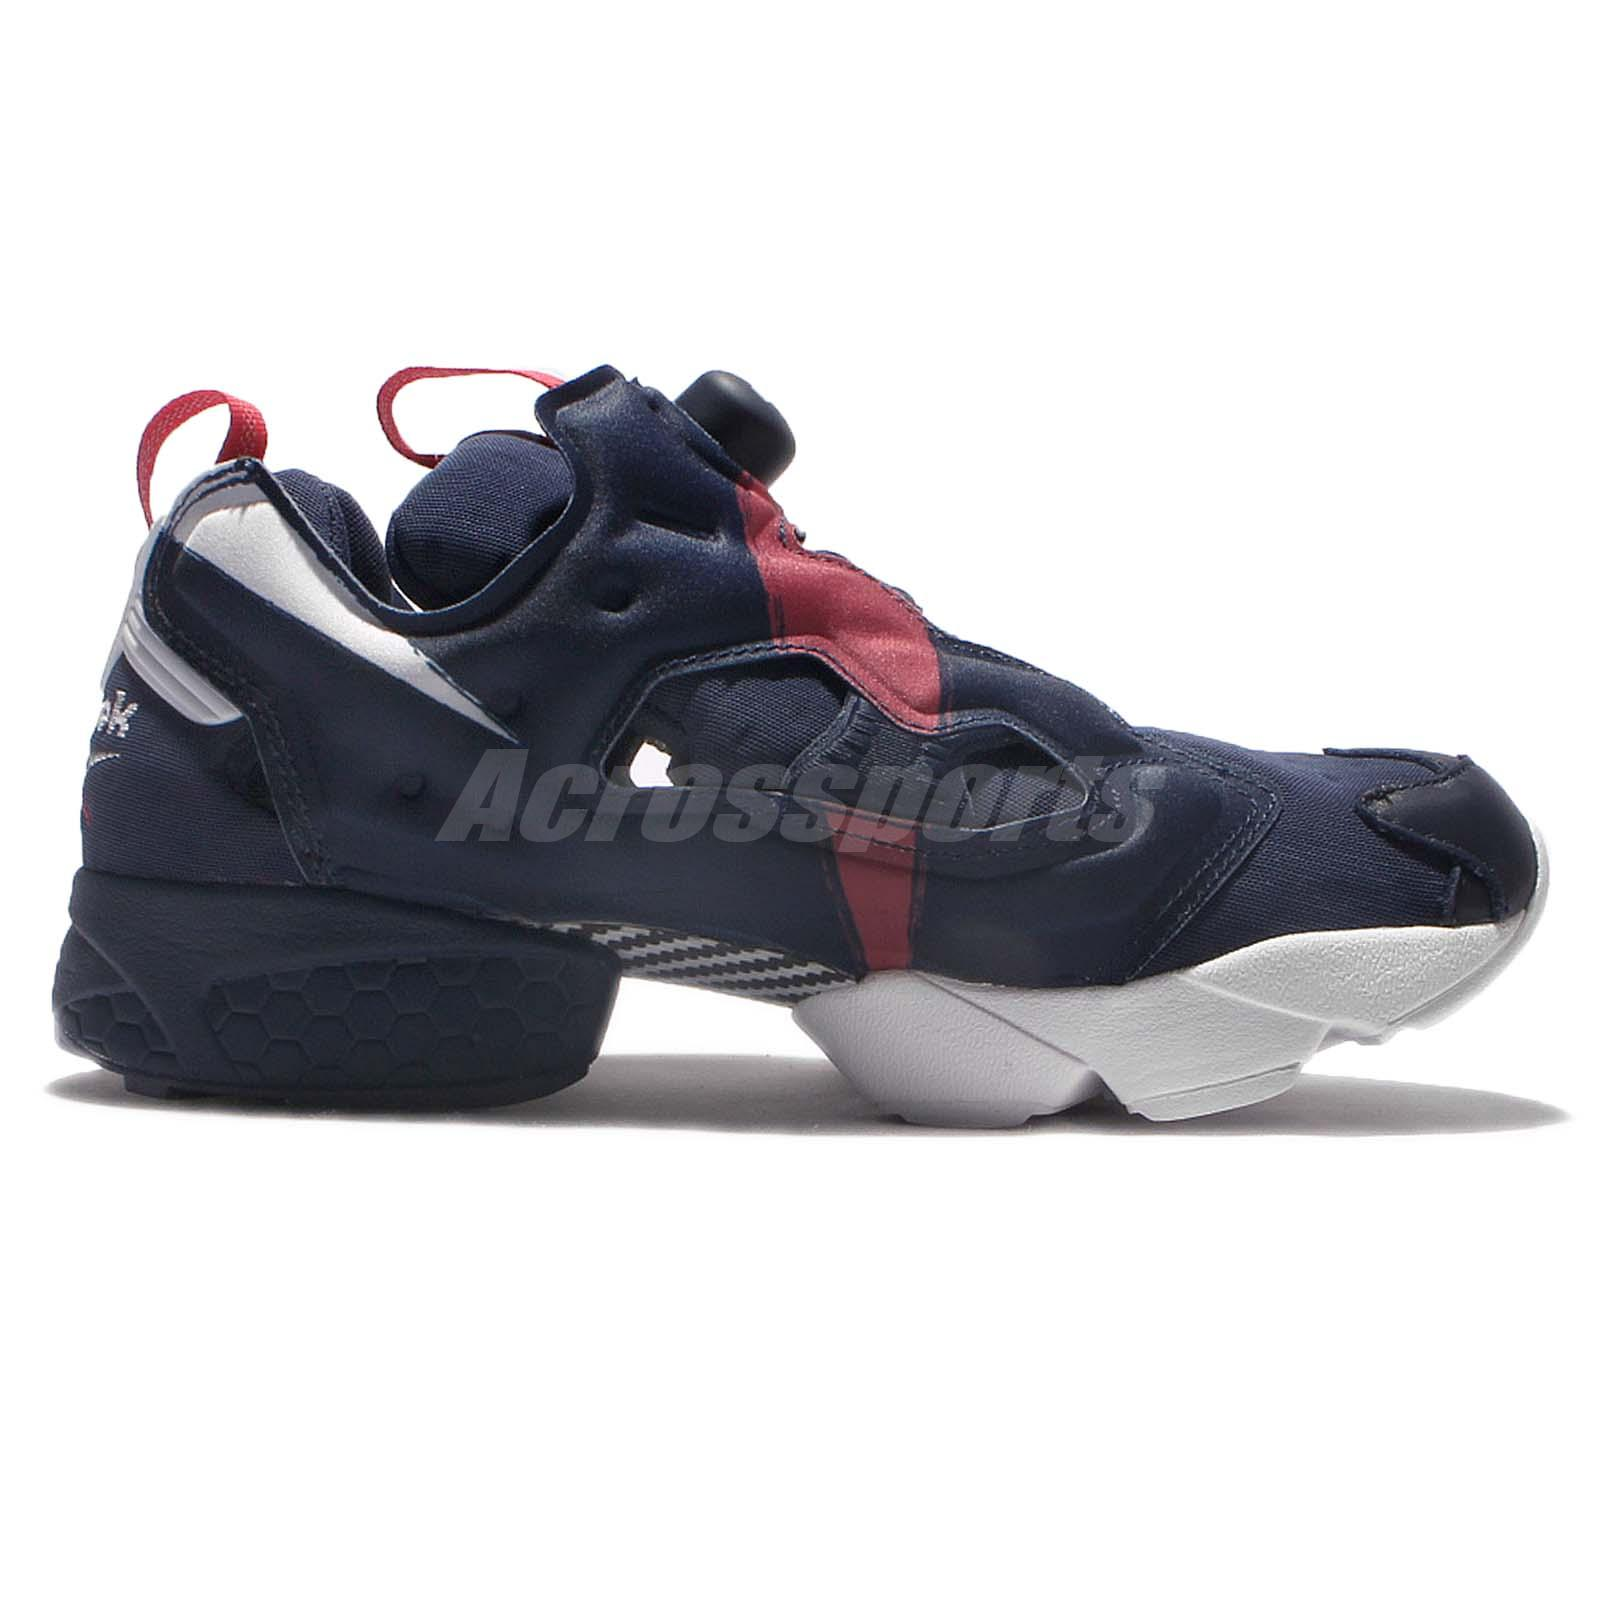 reebok insta pump fury ob overbranded navy red men running shoes sneakers ar3197 ebay. Black Bedroom Furniture Sets. Home Design Ideas